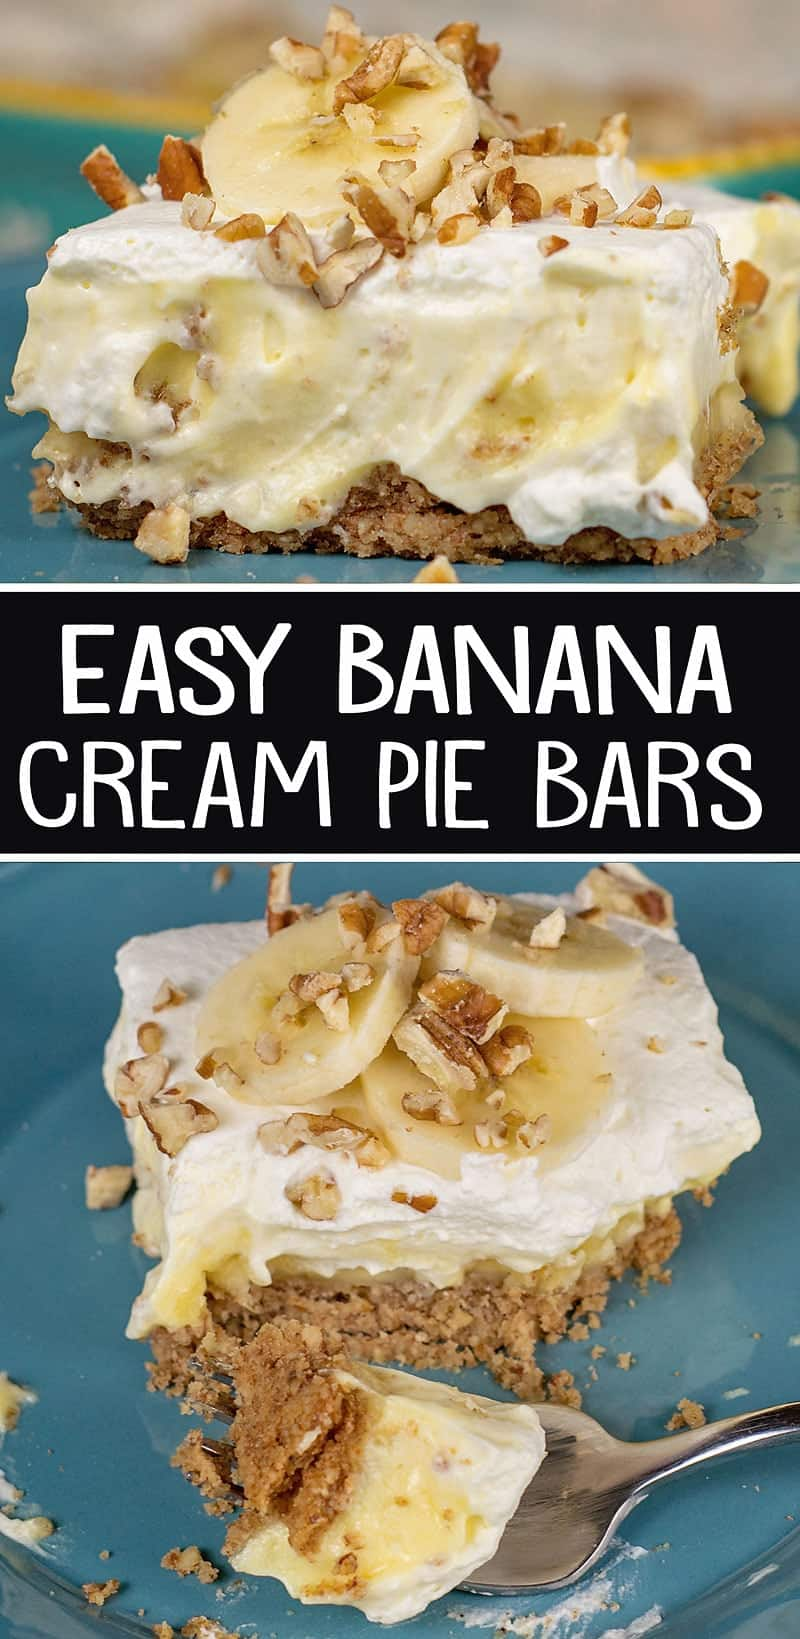 Easy Banana Cream Pie Bars